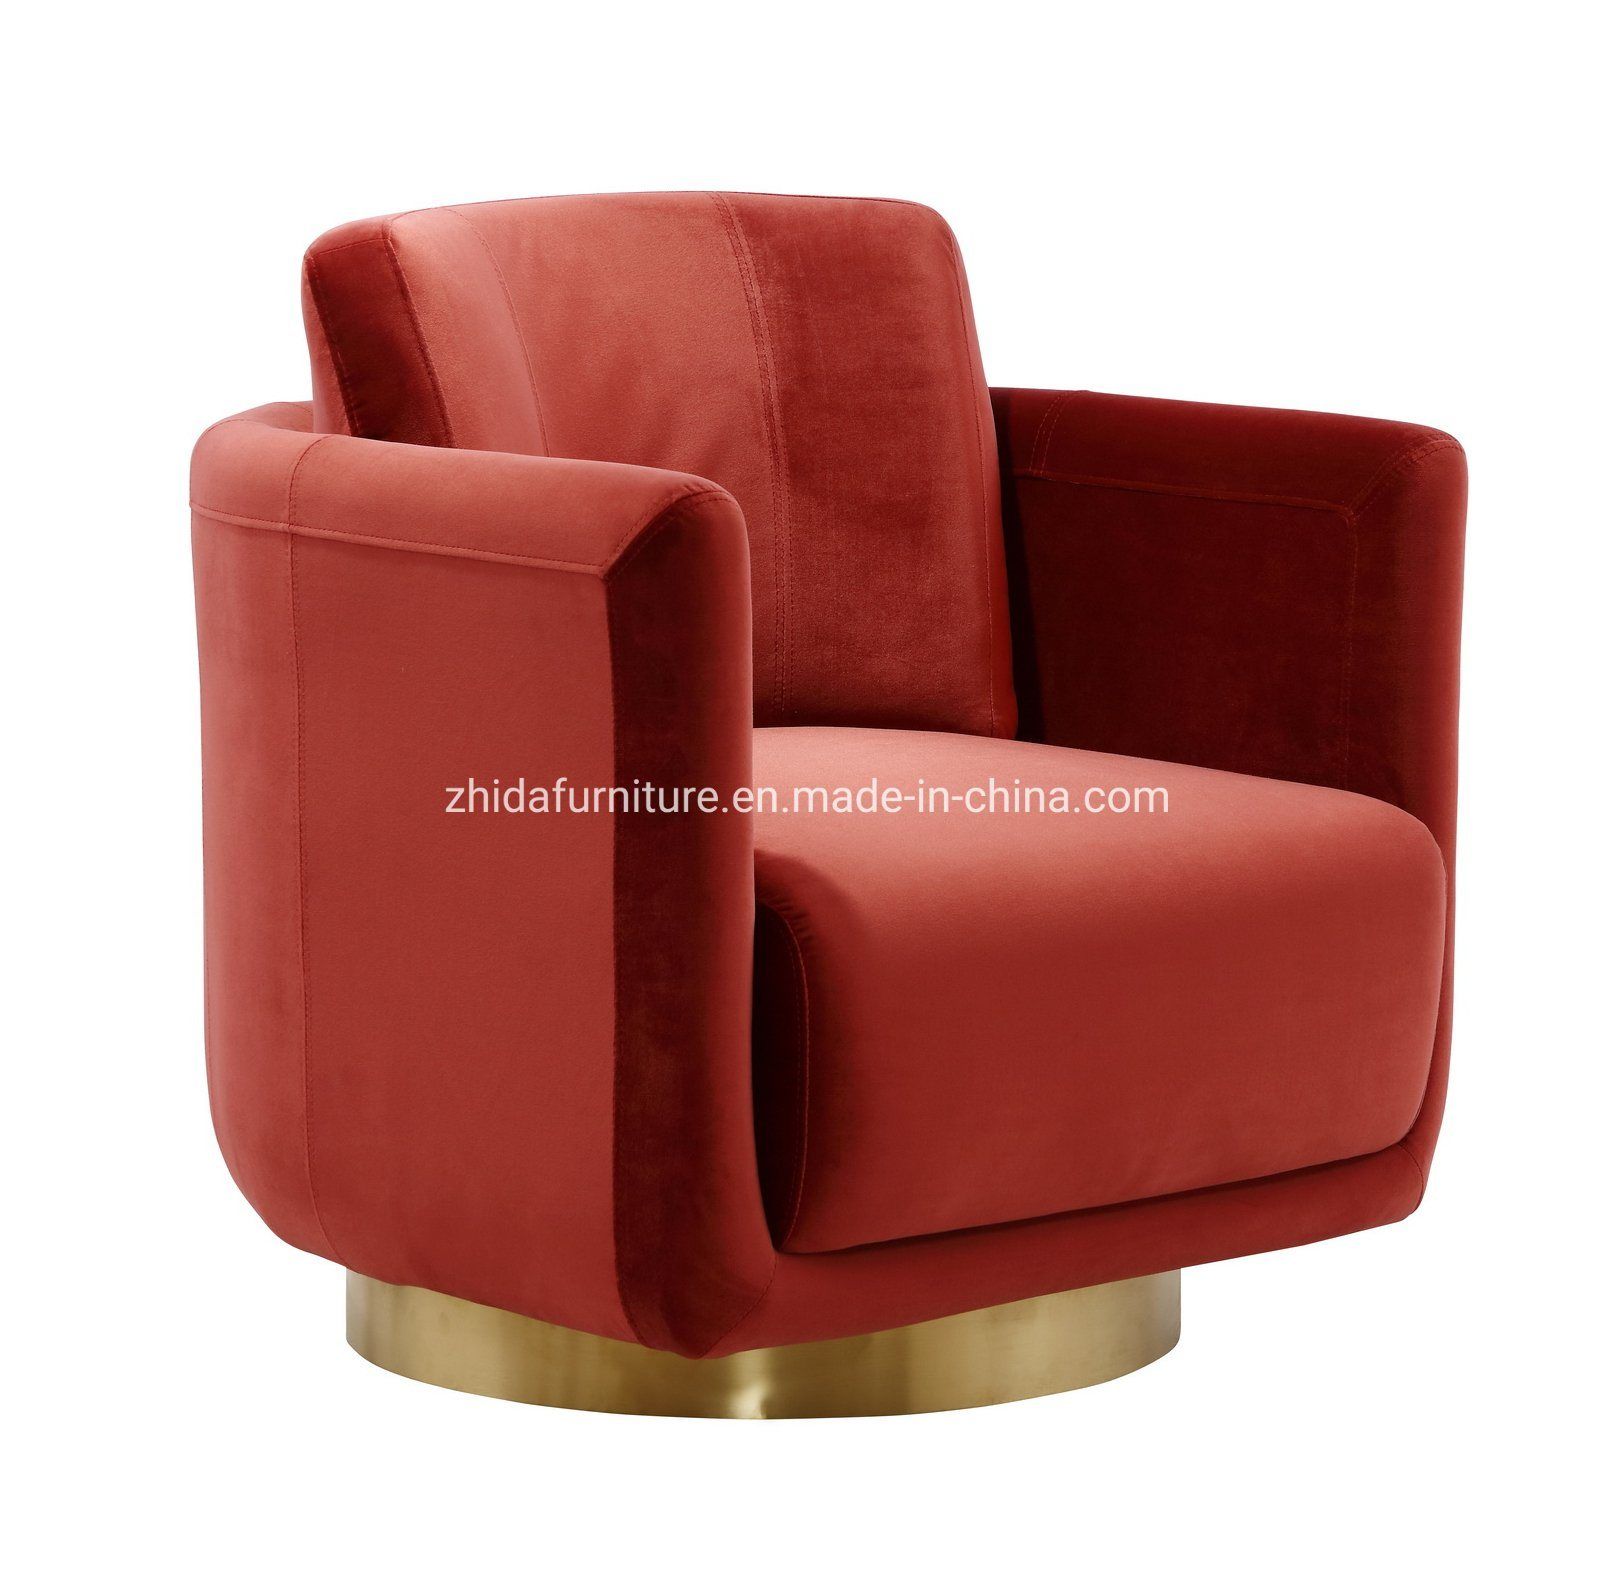 China Luxury Design Leisure Round Swivel Chair For Bedroom